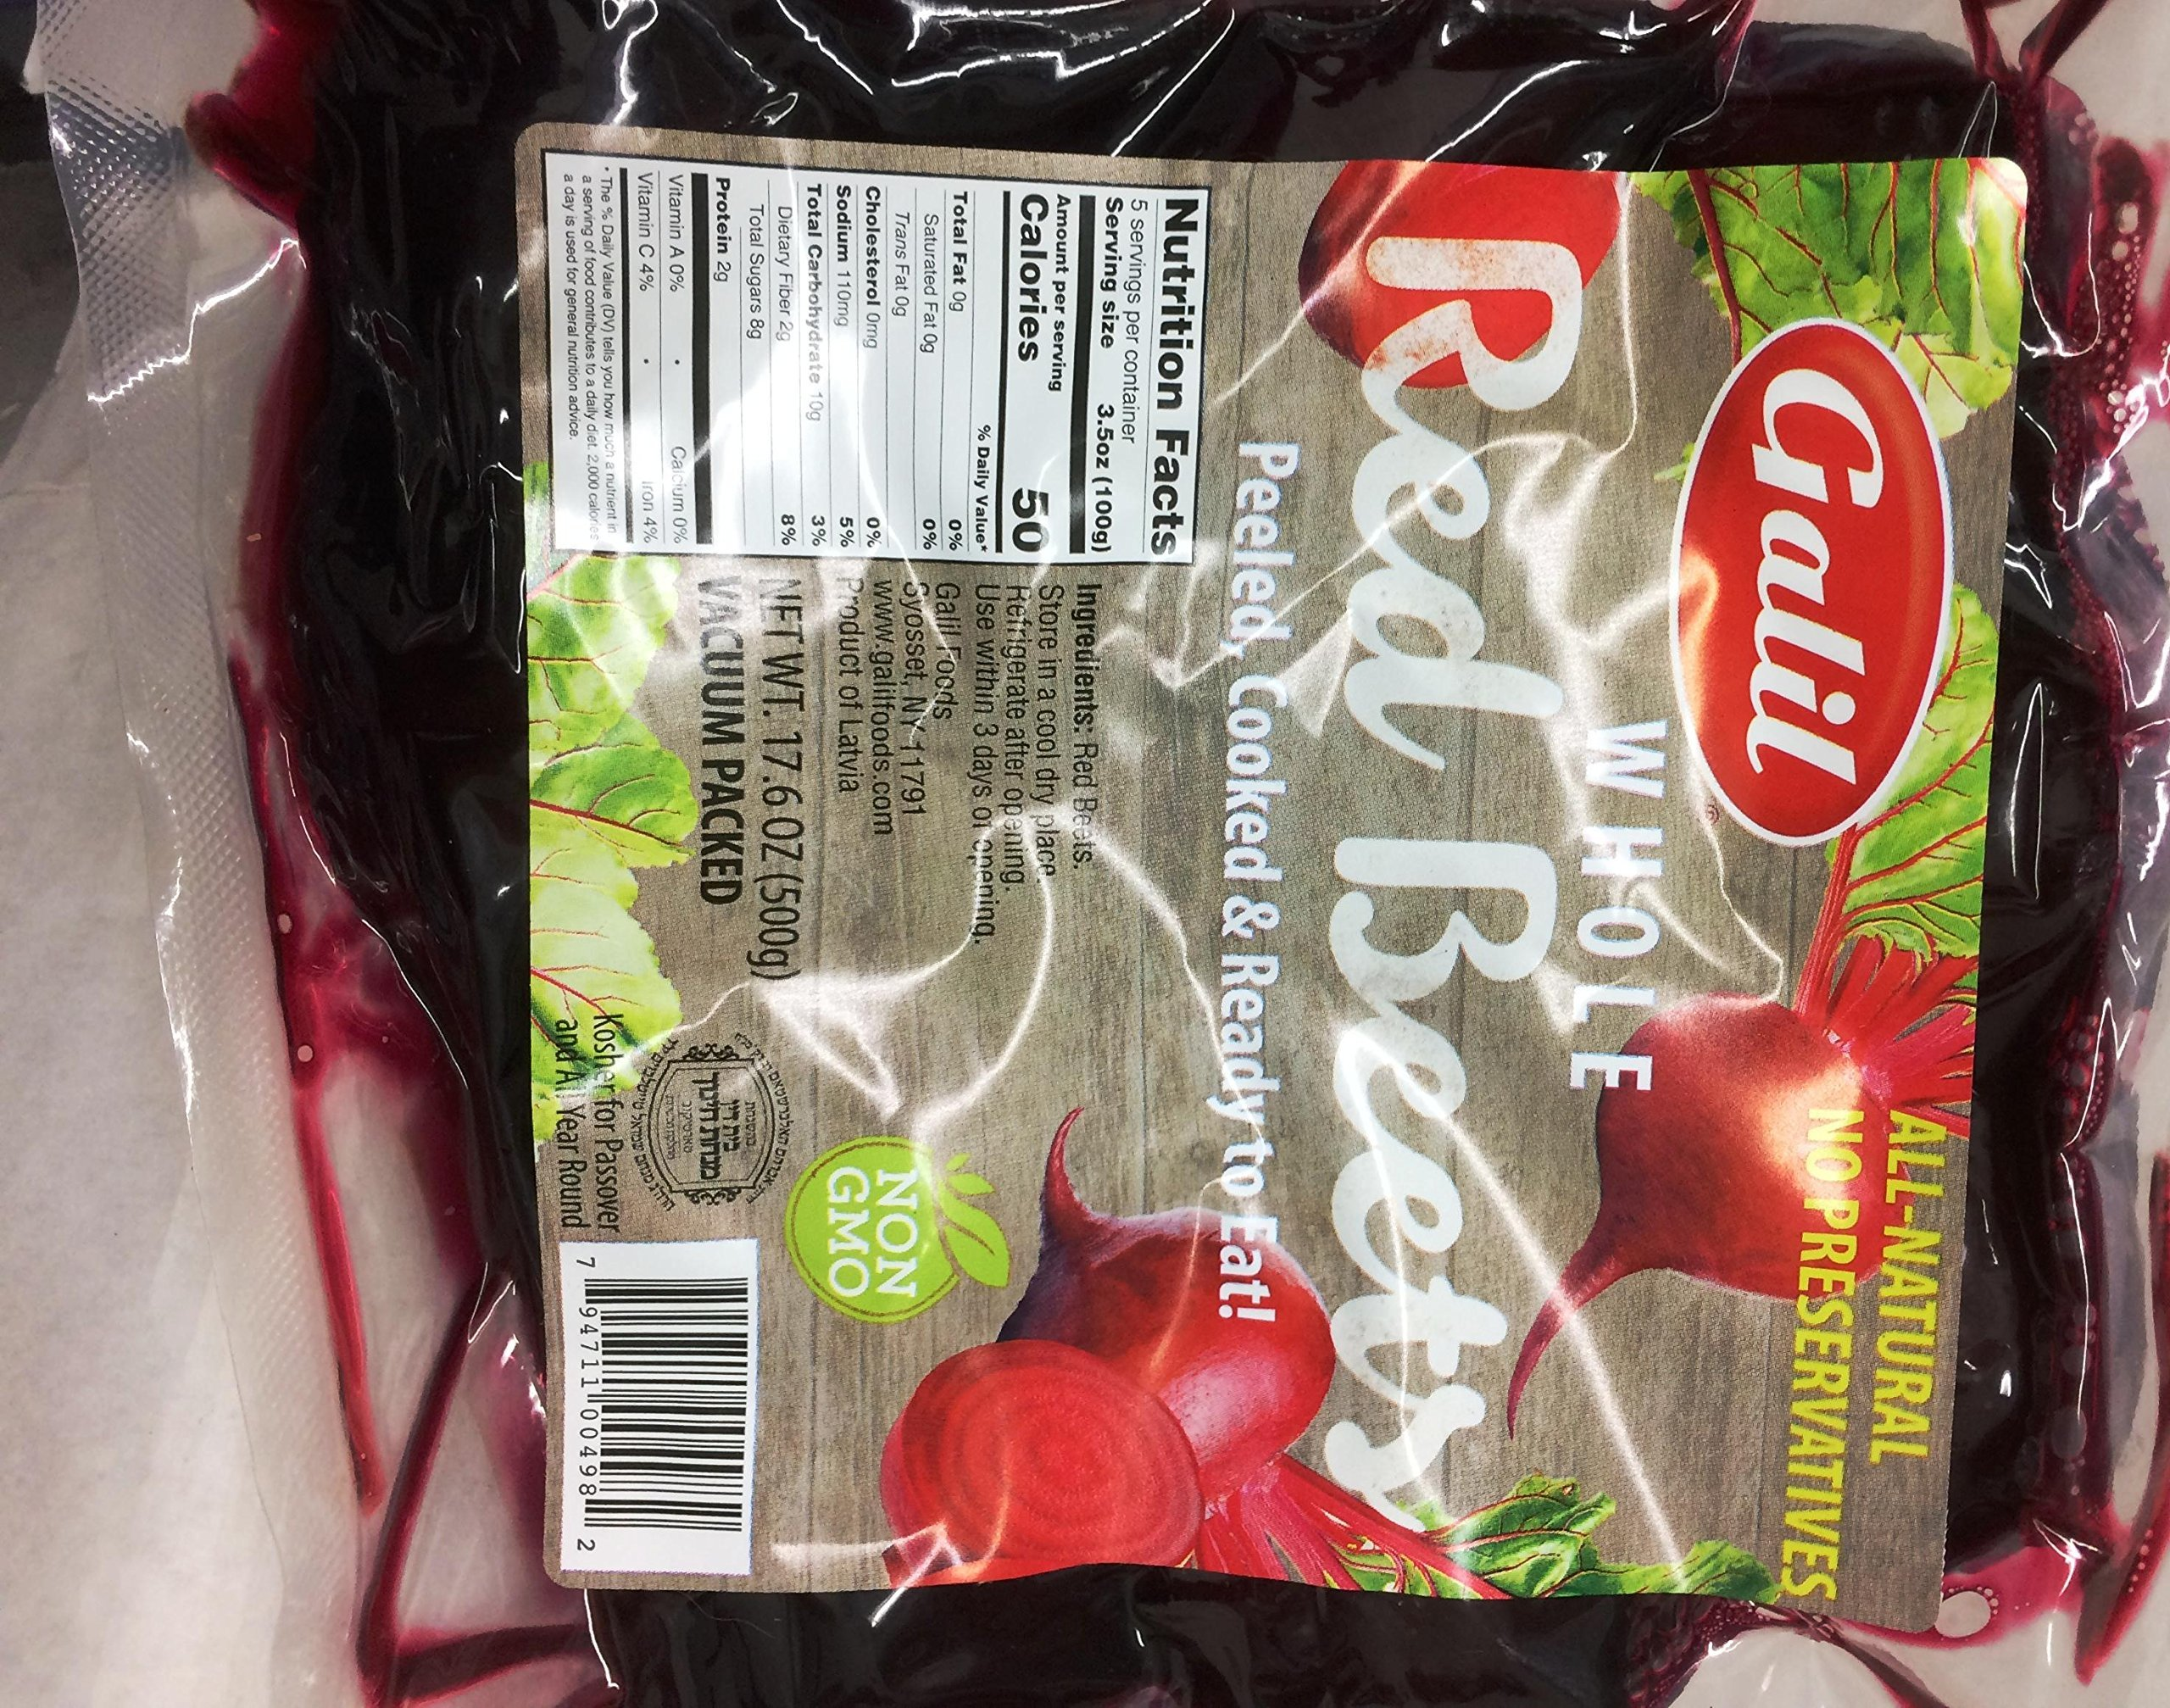 Galil Whole Red Beets Non Gmo Kosher For Passover 17.6 Oz. Pack Of 3.